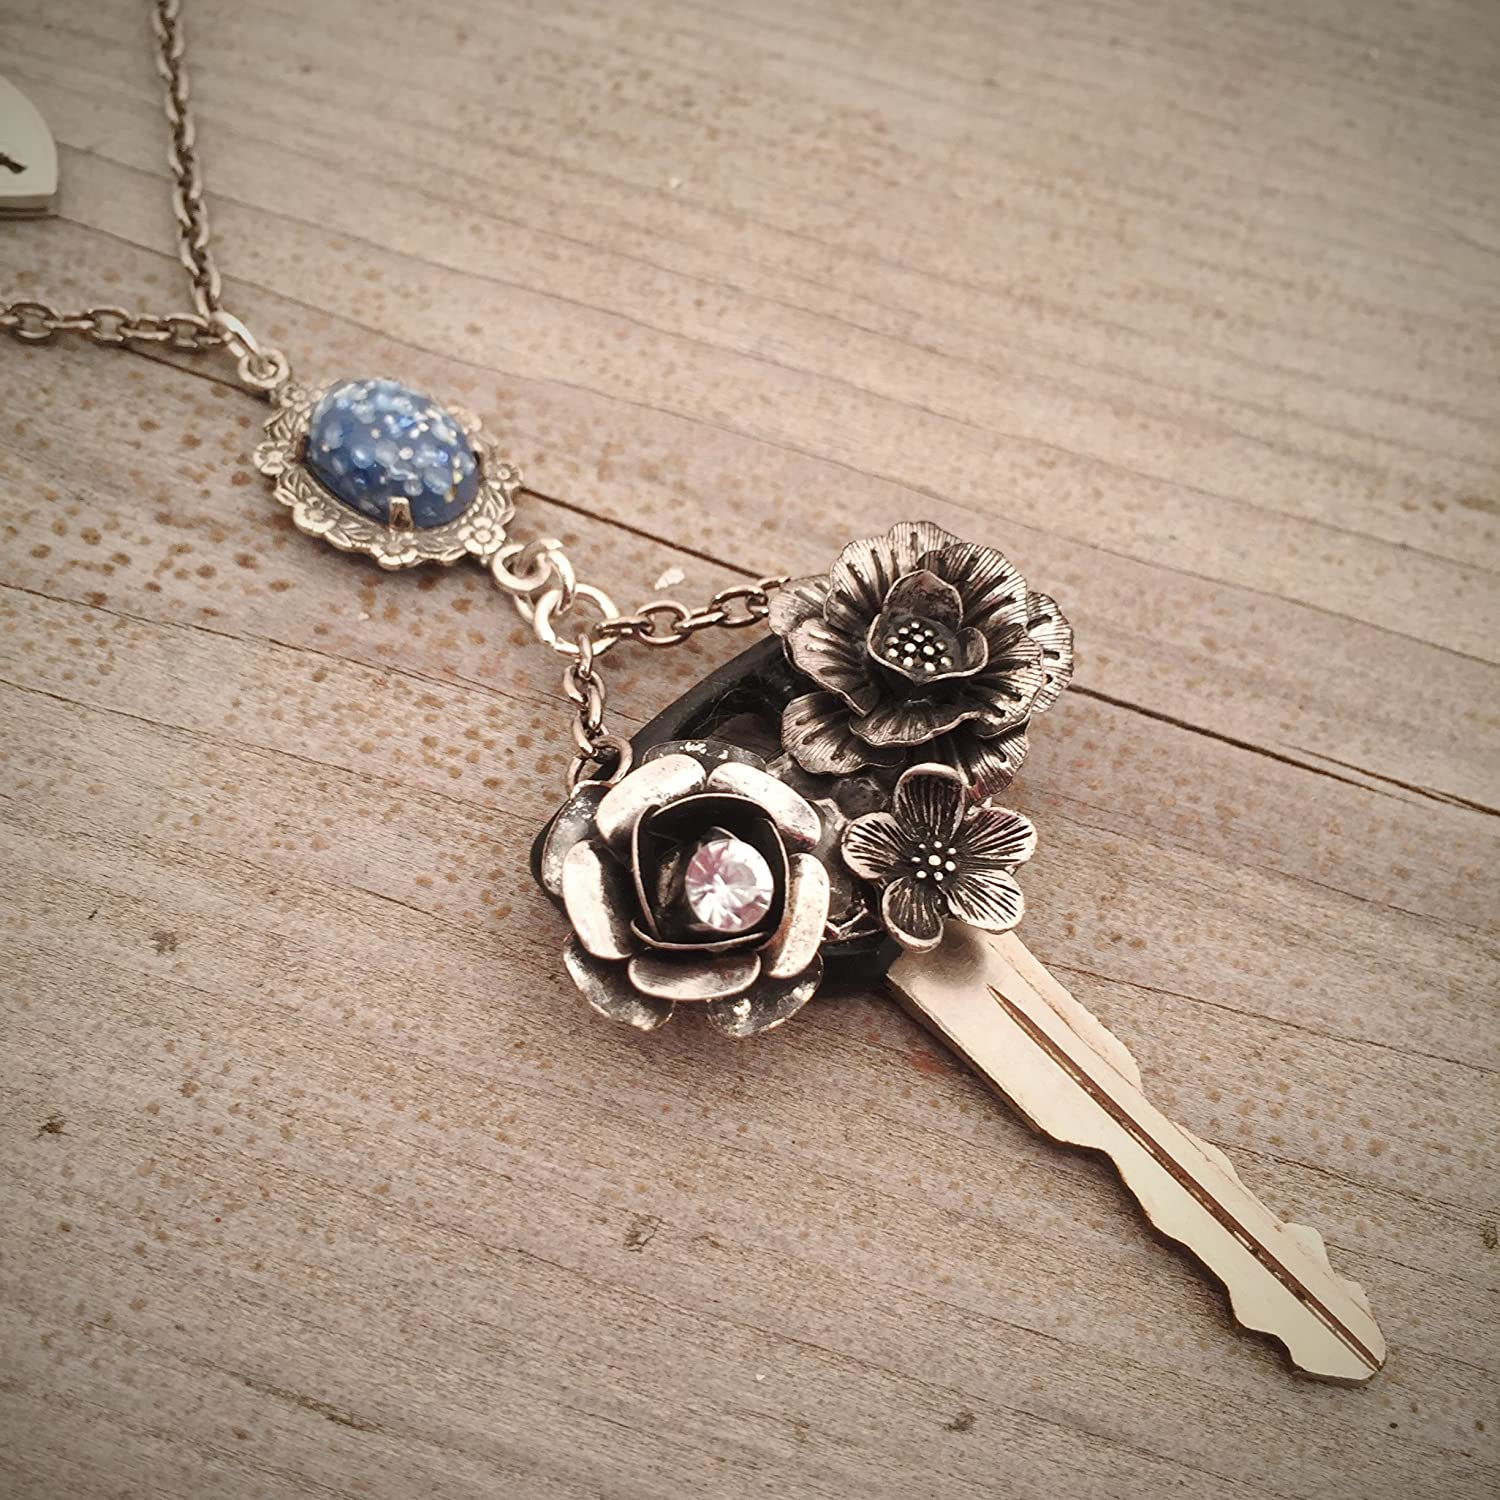 Joy assemblage necklace bird nature ooak pearl silver floral artisan made